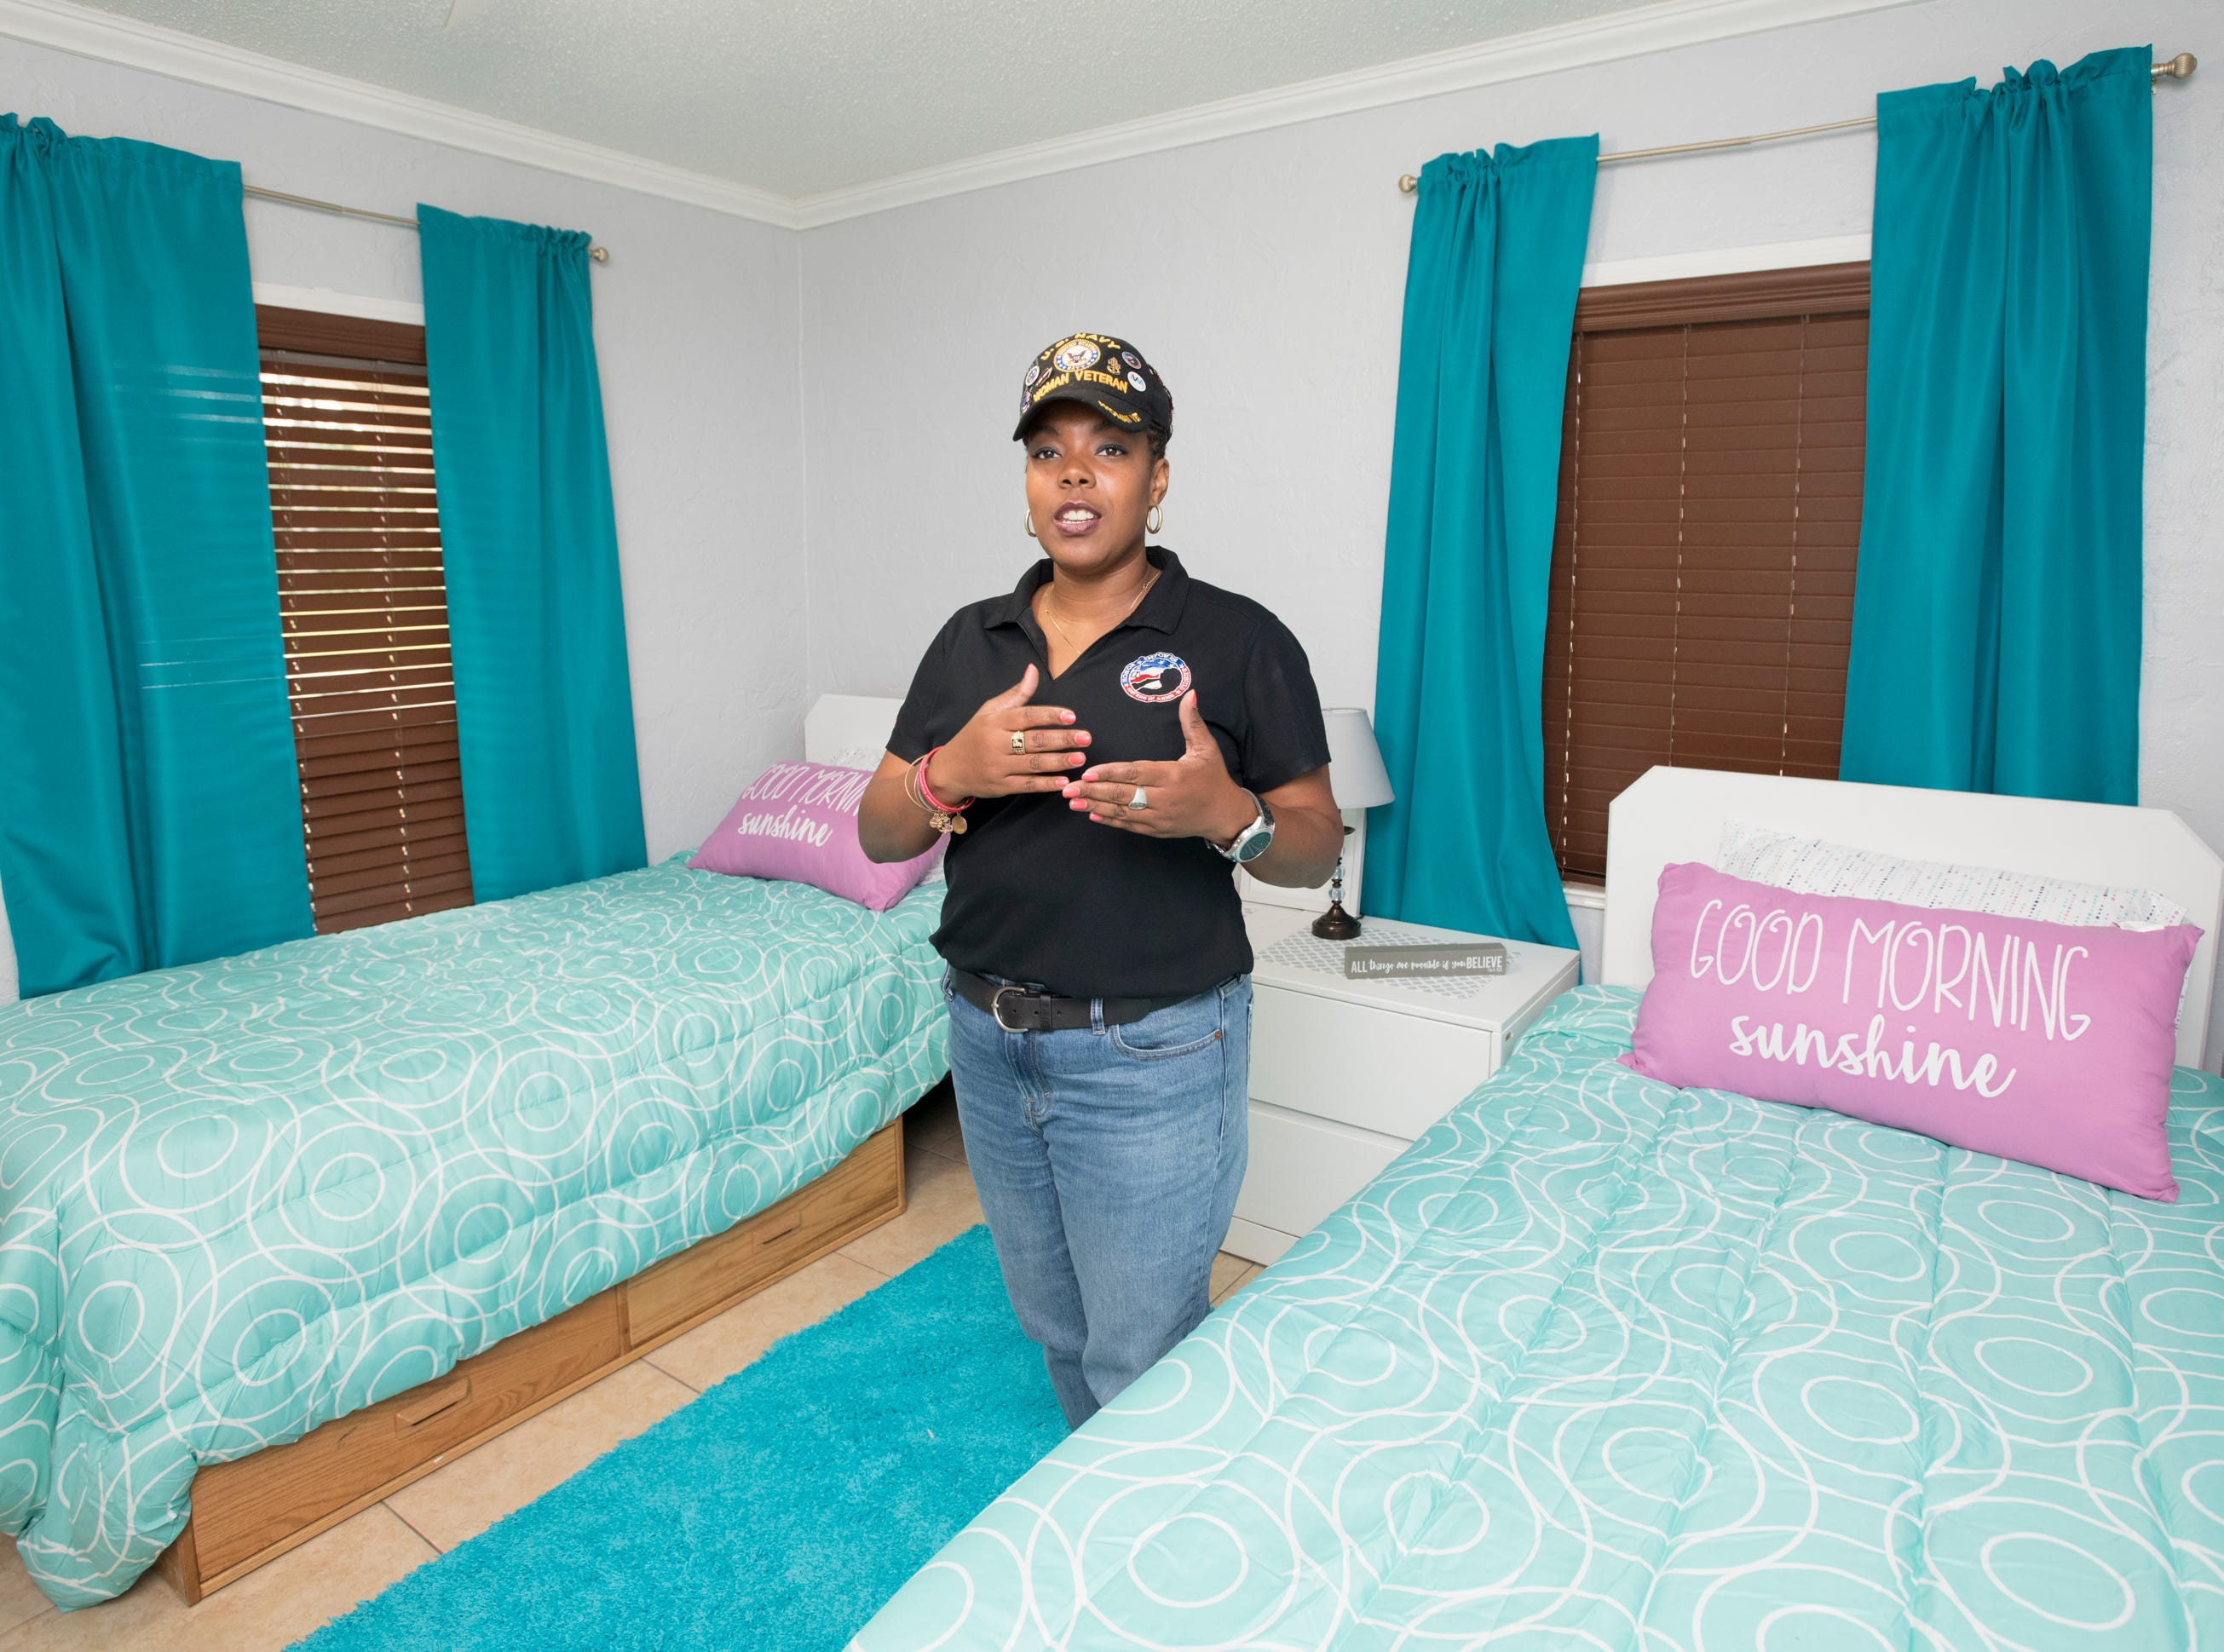 CEO and founder Nancy Bullock-Prevot proudly shows off one of the bedrooms at the HER Foundation Faith House on West Fairfield Drive in Pensacola on Wednesday, November 7, 2018.